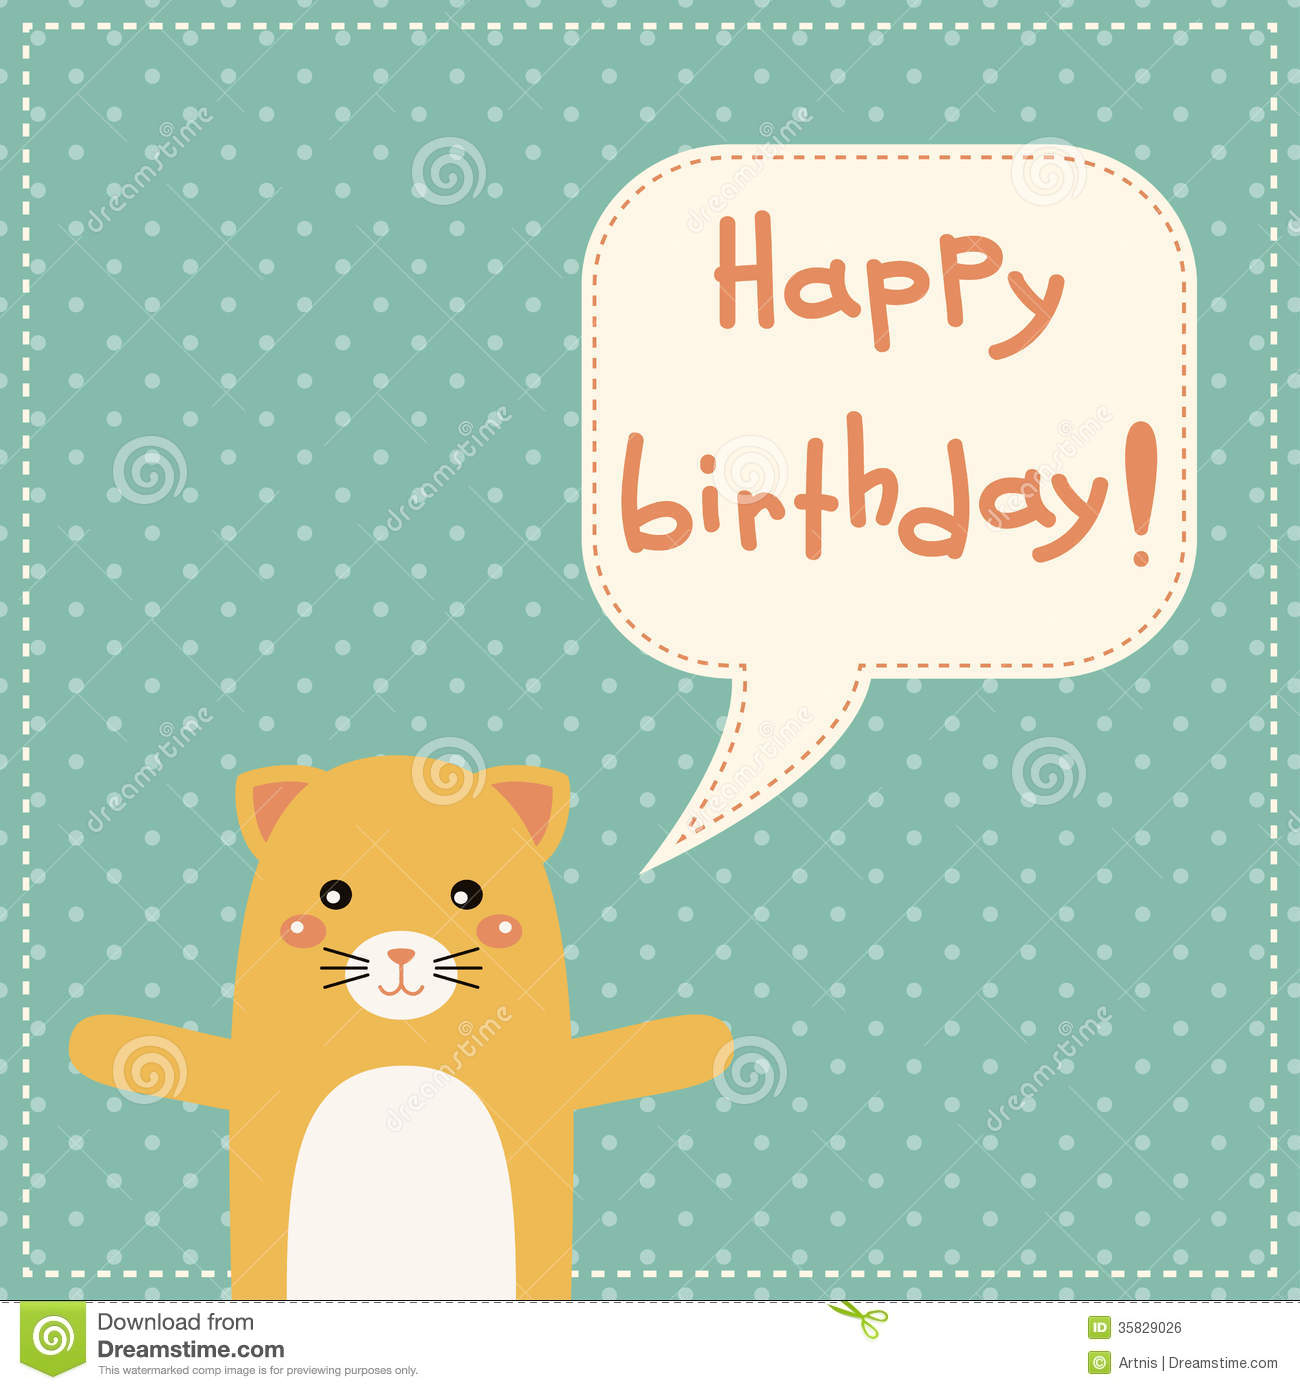 Exceptionnel Cute Happy Birthday Card With Fun Cat.